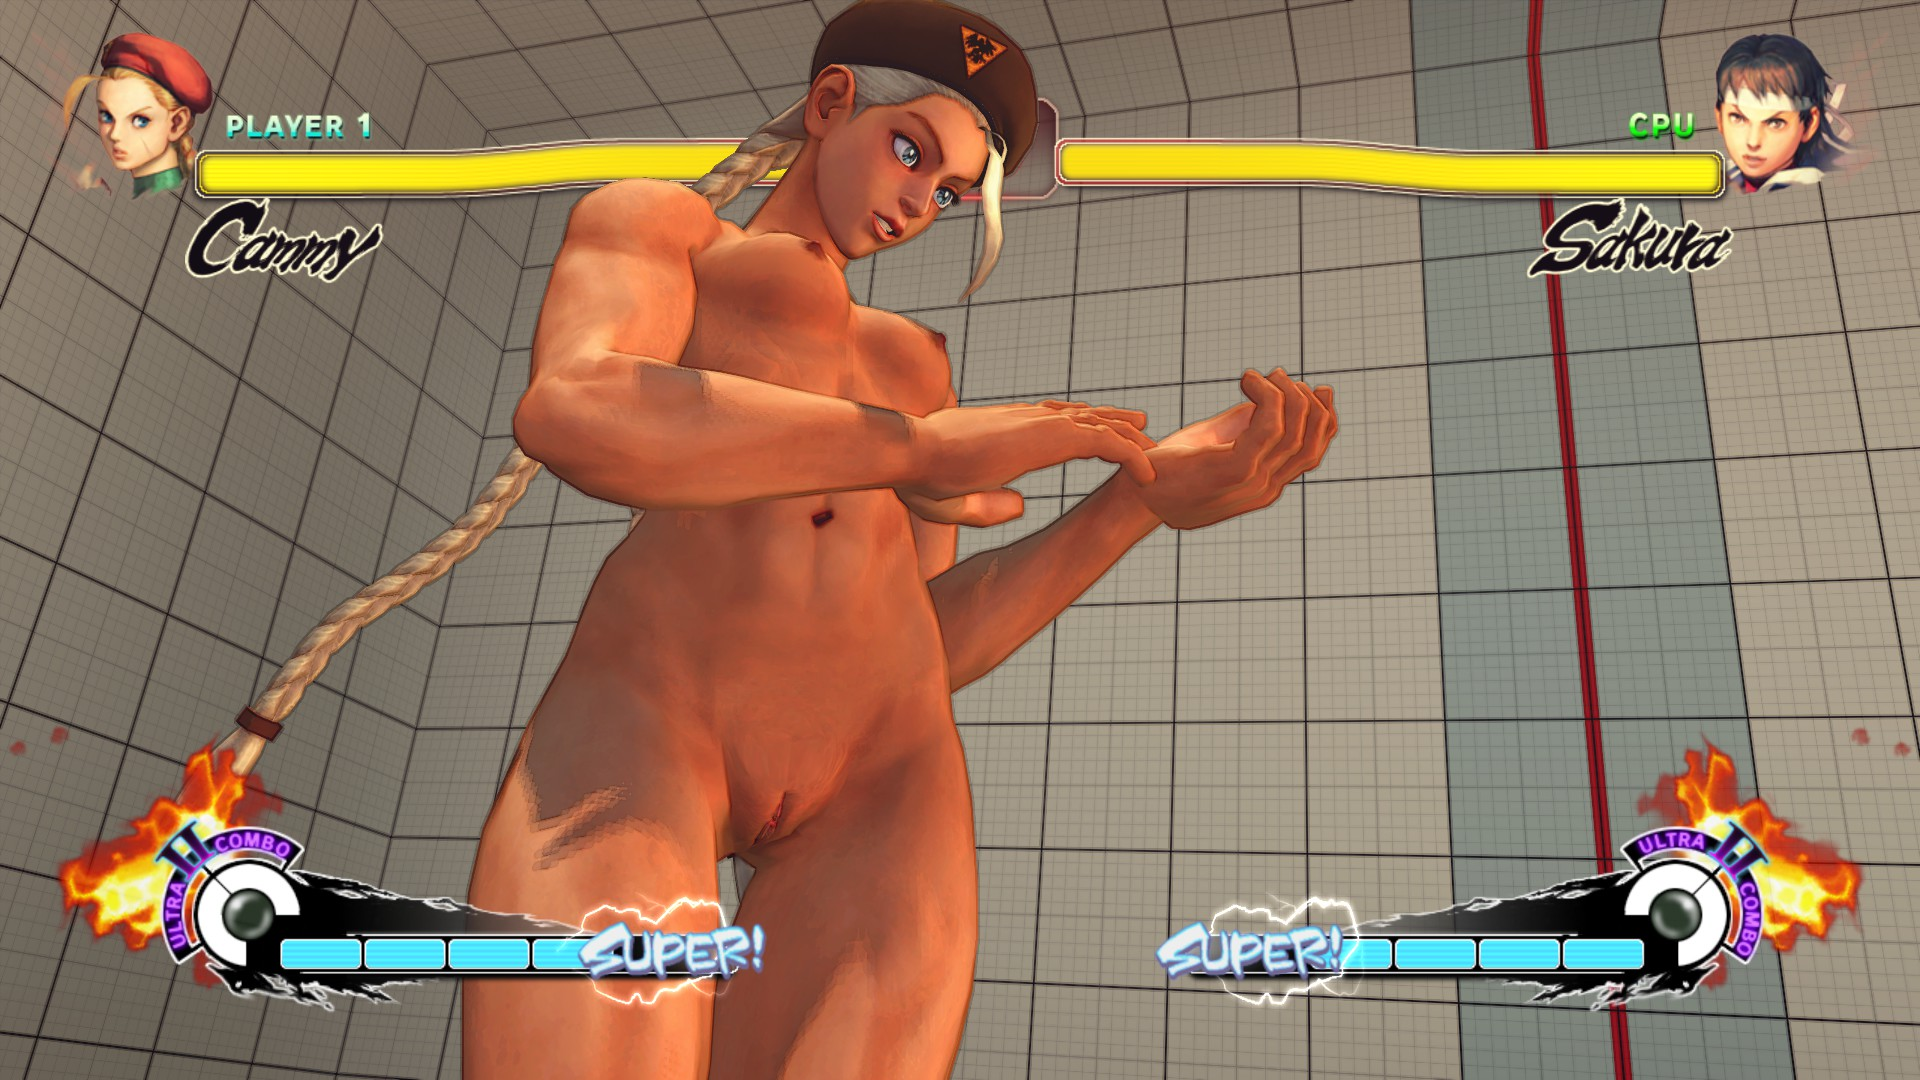 Images of naked street fighter girls exploited image